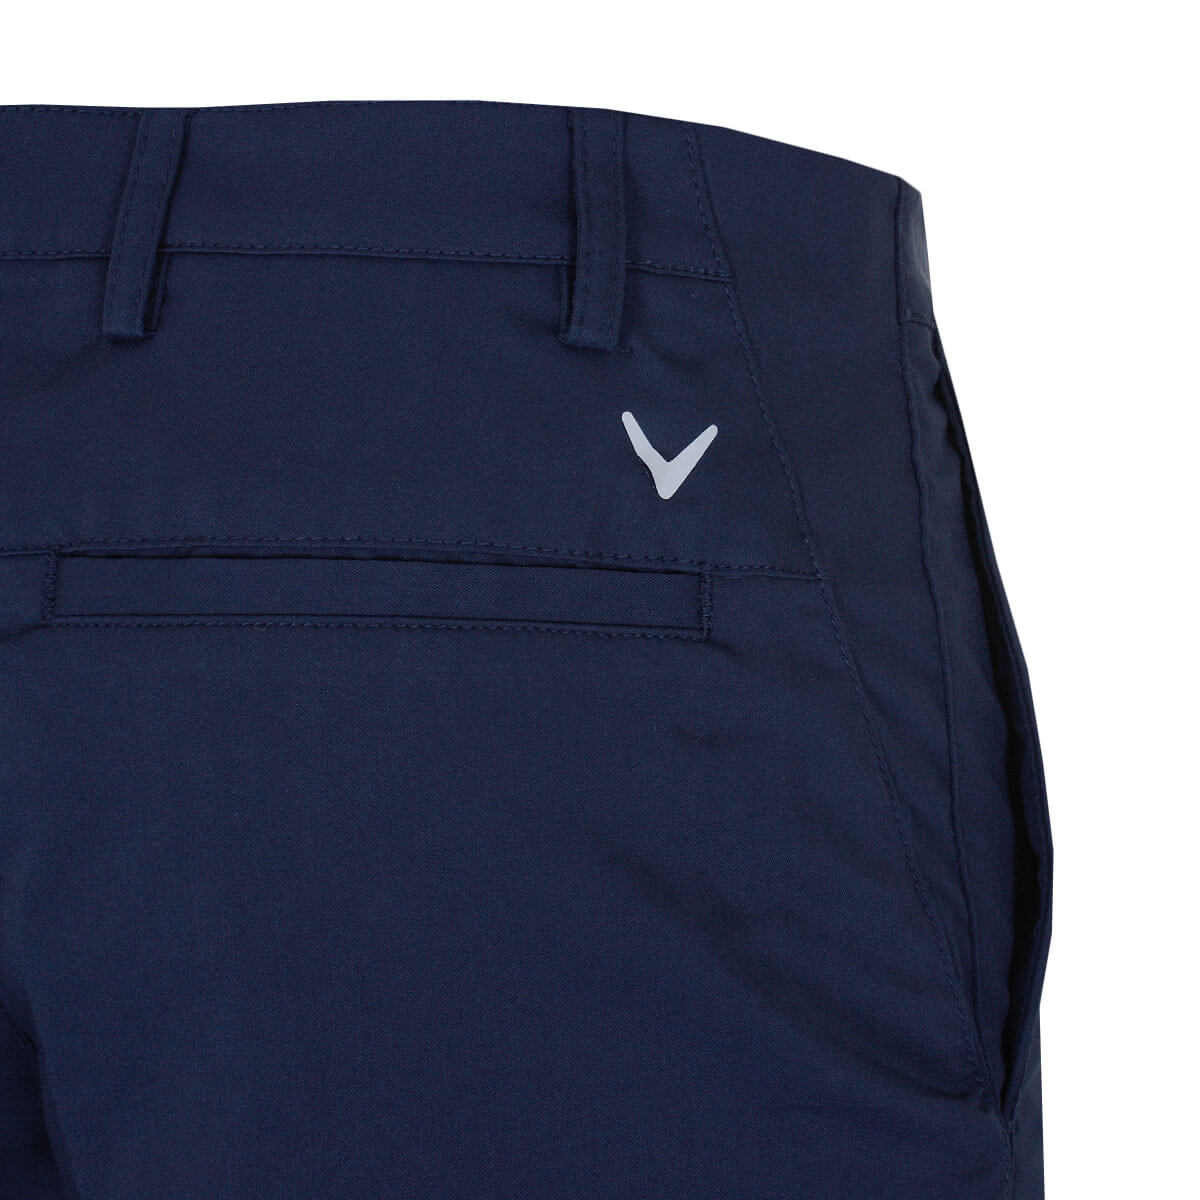 Callaway-Mens-2019-Ergo-Stretch-Golf-Slim-Fit-Tailored-Chevron-Shorts thumbnail 7